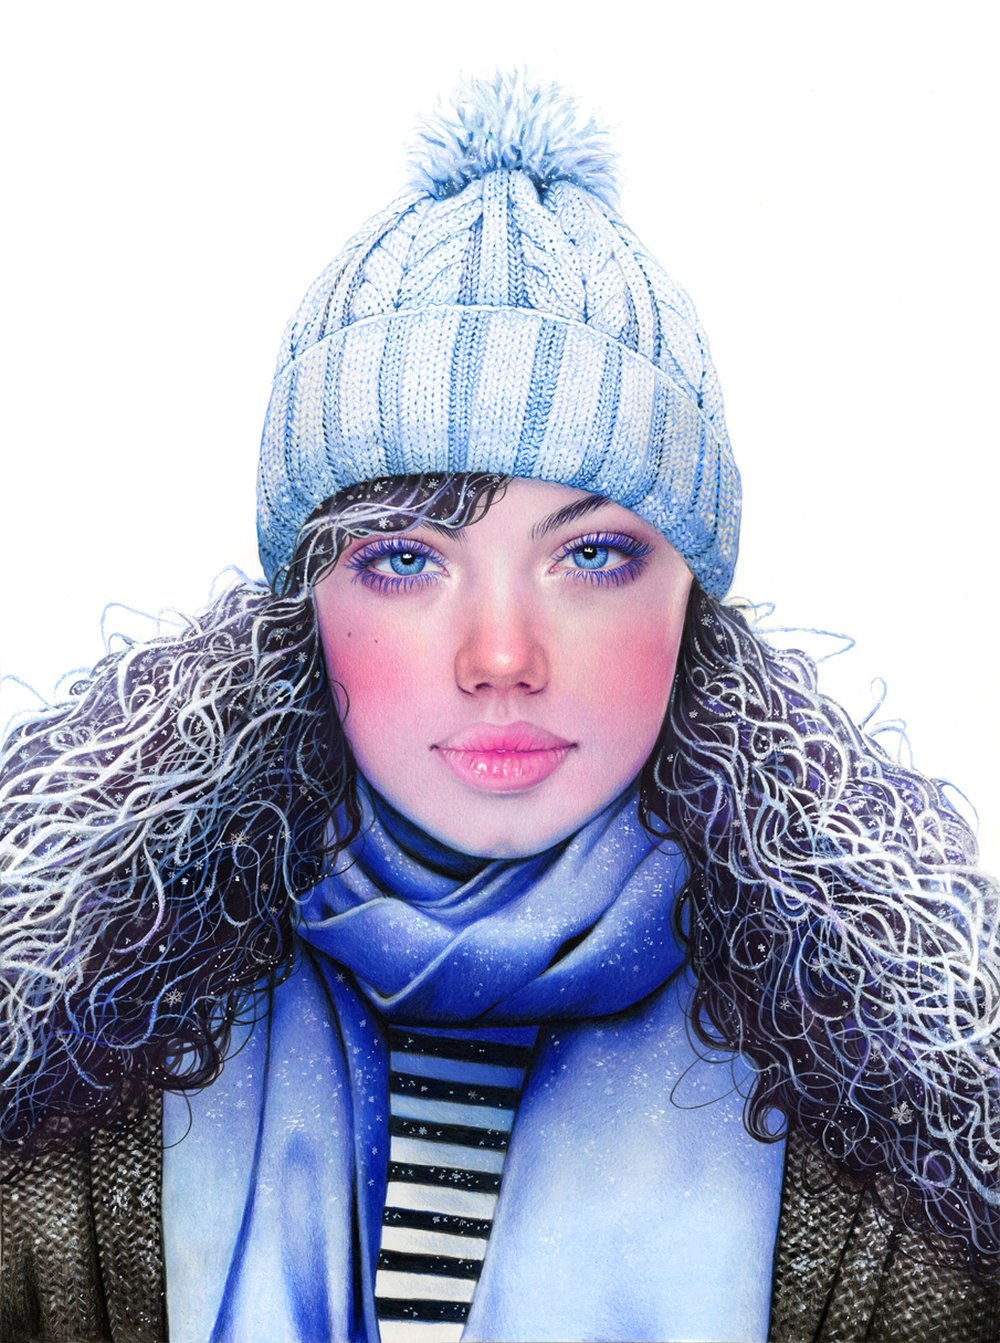 Morgan Davidson-Colored-Pencil- Drawings-30c752